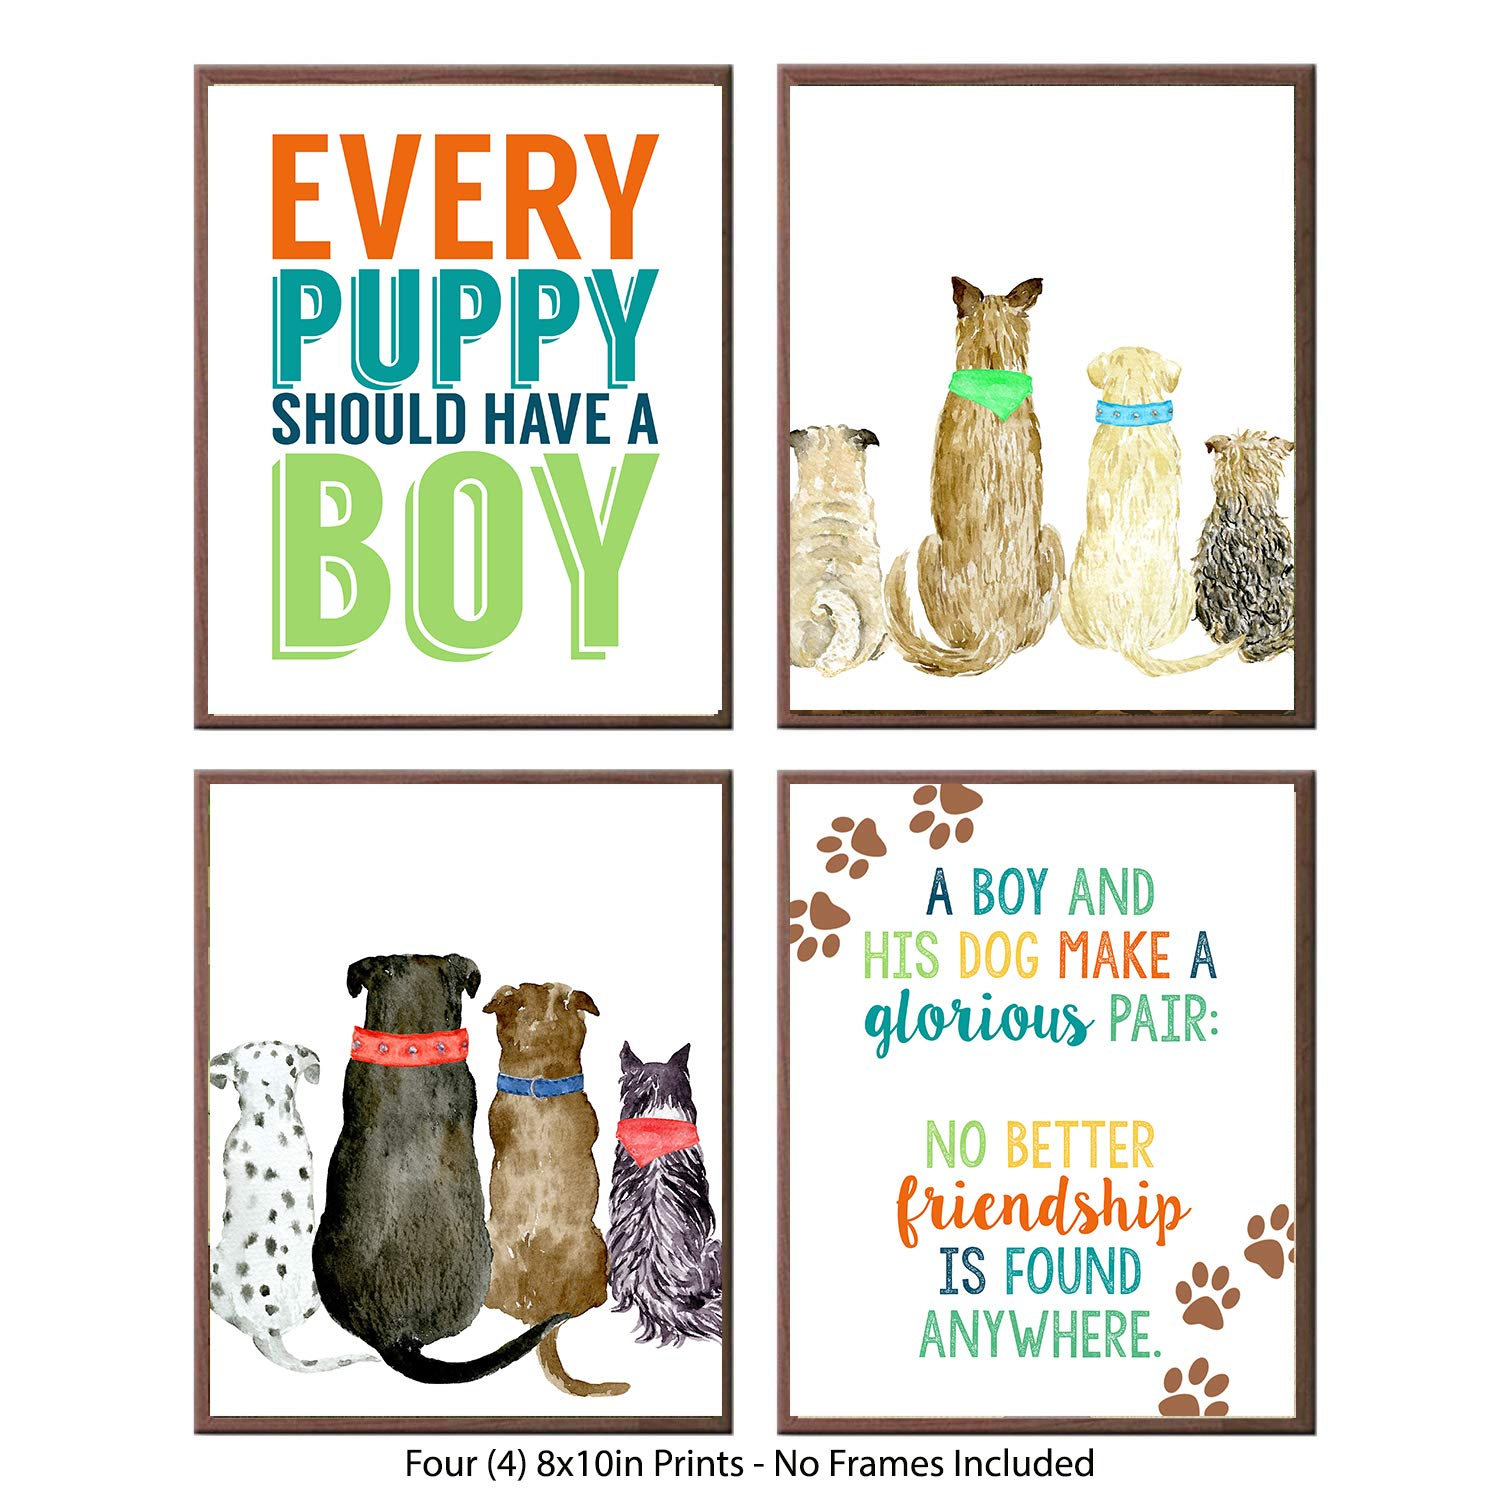 I'm Not Alone Said The Boy I Have A Puppy - Vintage Watercolor Retro Themed Room Nursery Wall Print Decoration Art Sets 8x10 Unframed (Every Puppy Should Have A Boy)